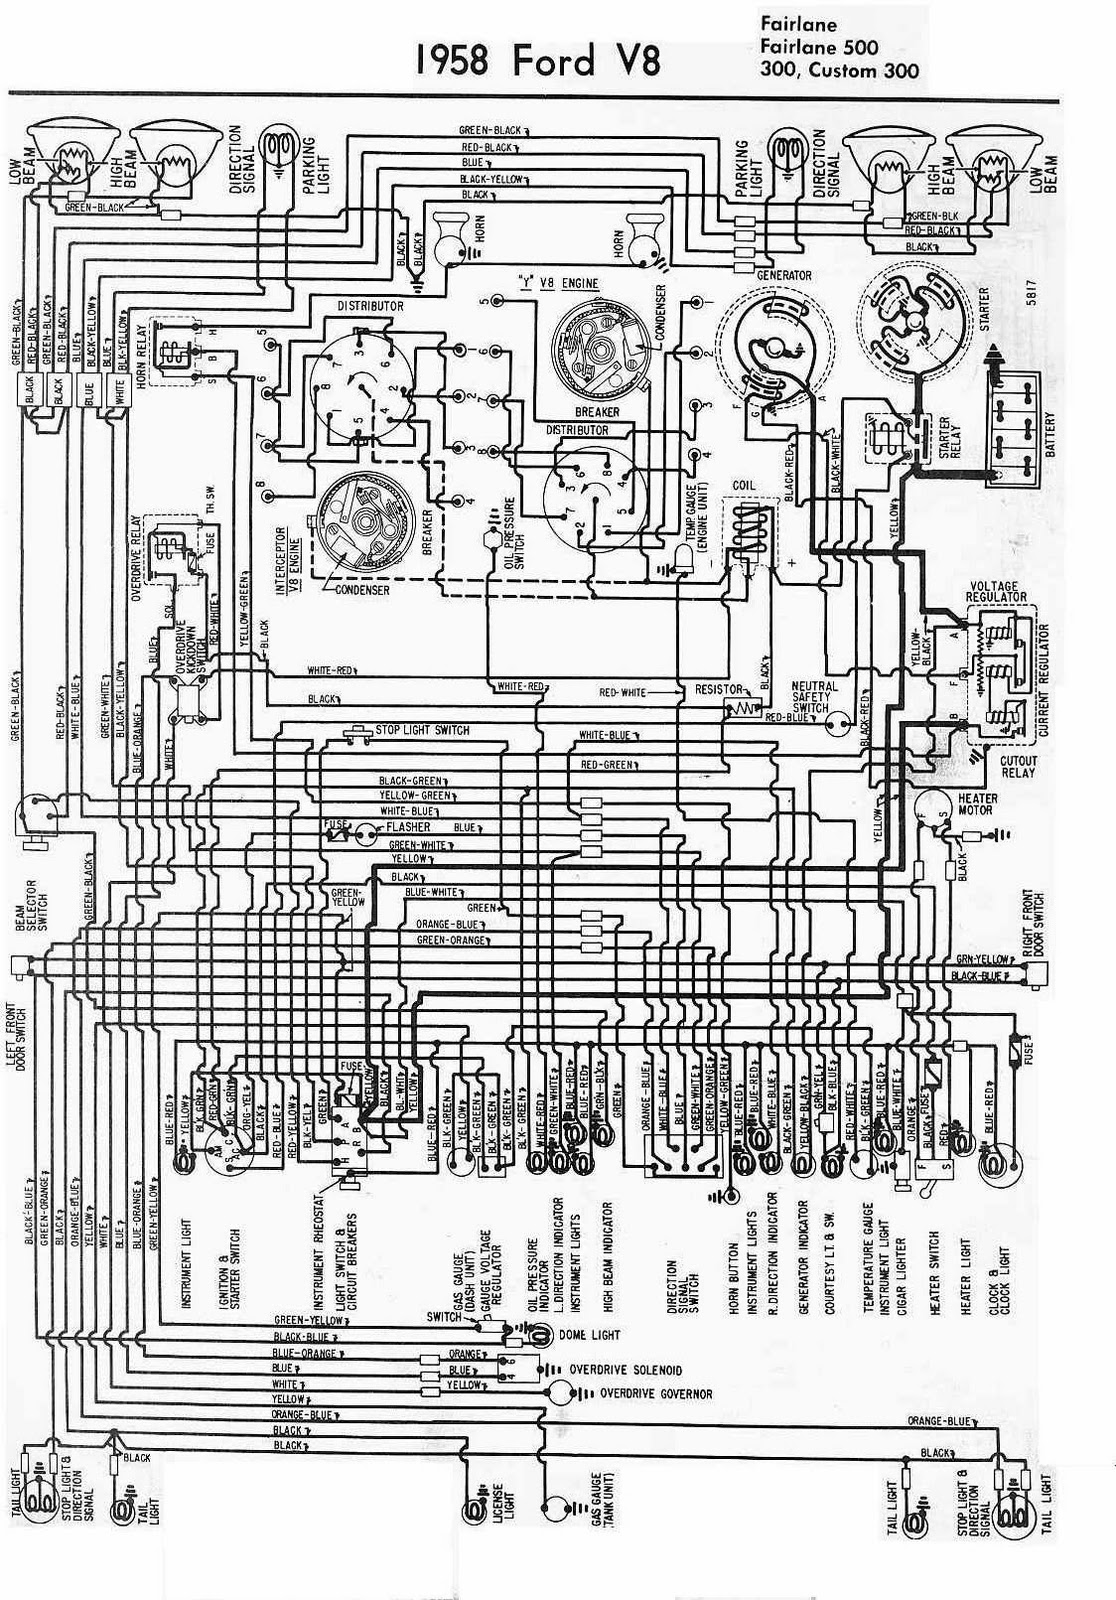 1966 ford galaxie wiring harness wiring diagram expert 1966 Ford Mustang Wiring Diagram